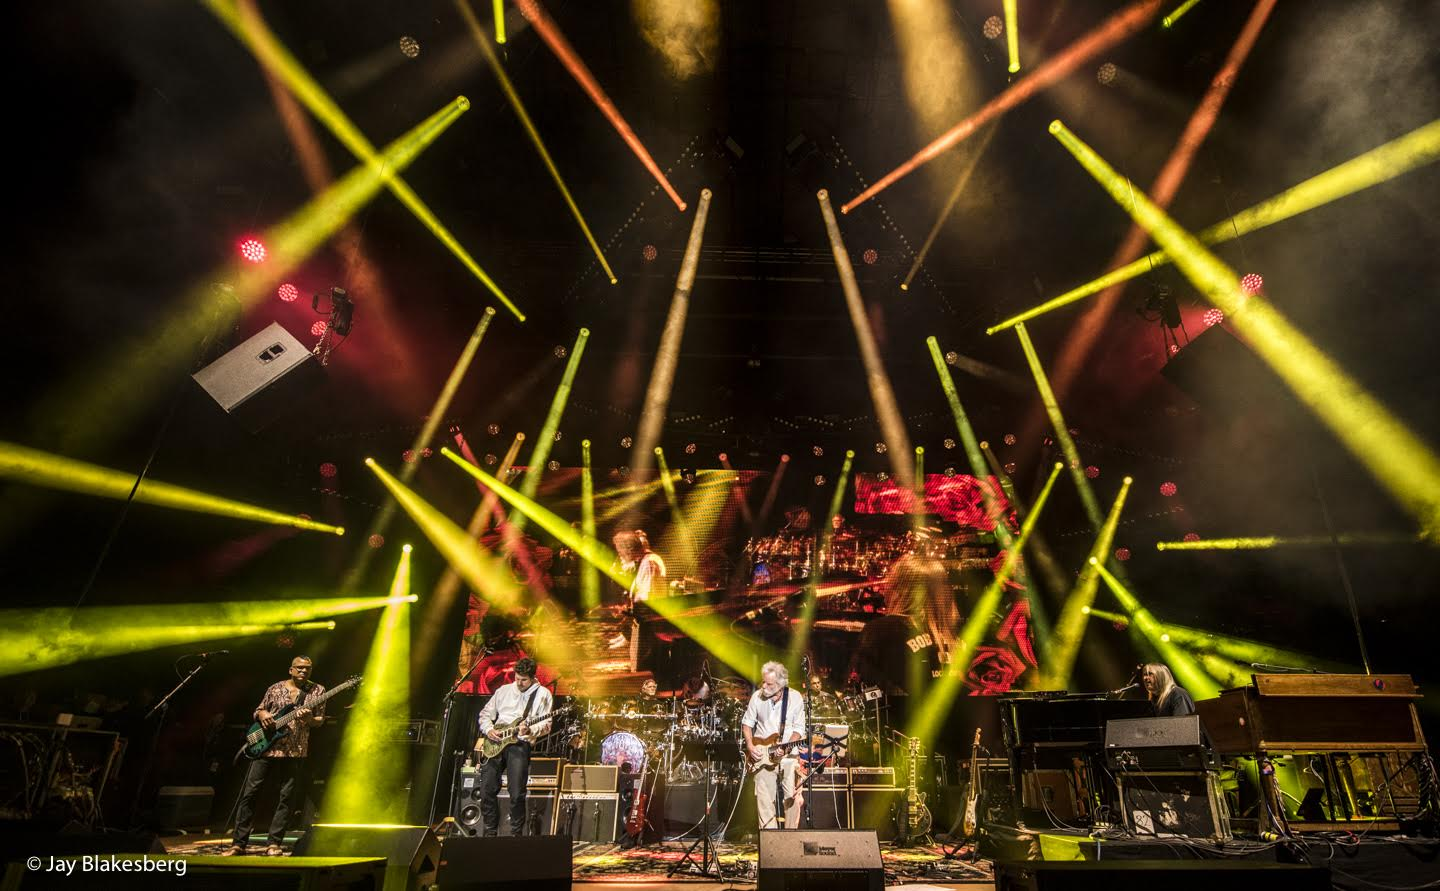 Dead n Co photographed at Shoreline Amphitheatre in Mountain View, CA June 3, 2017©Jay Blakesberg